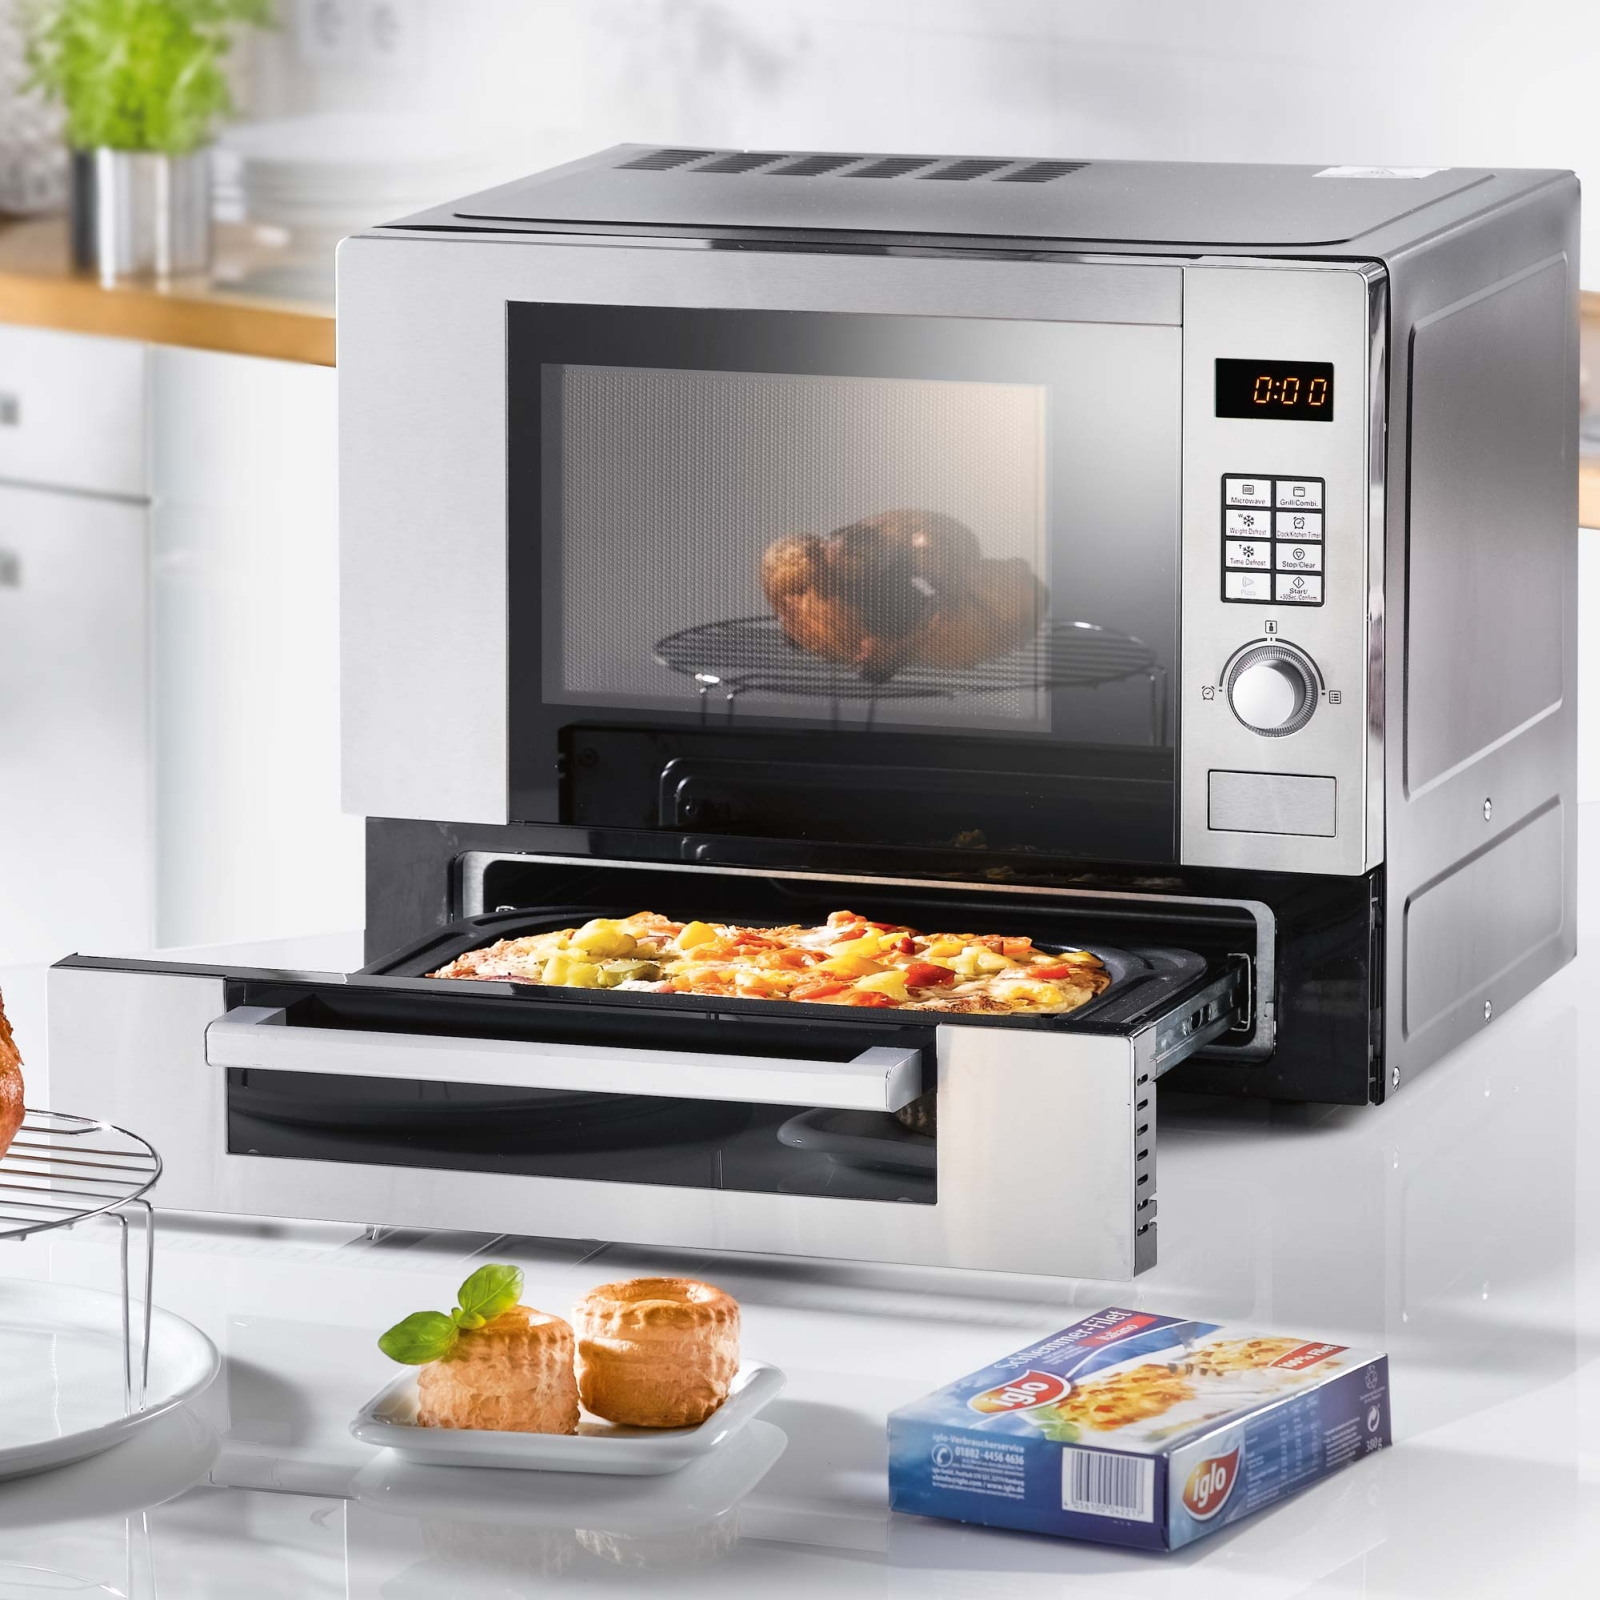 edelstahl mikrowelle mini backofen pizzaofen grill automatik ofen digital neu ebay. Black Bedroom Furniture Sets. Home Design Ideas